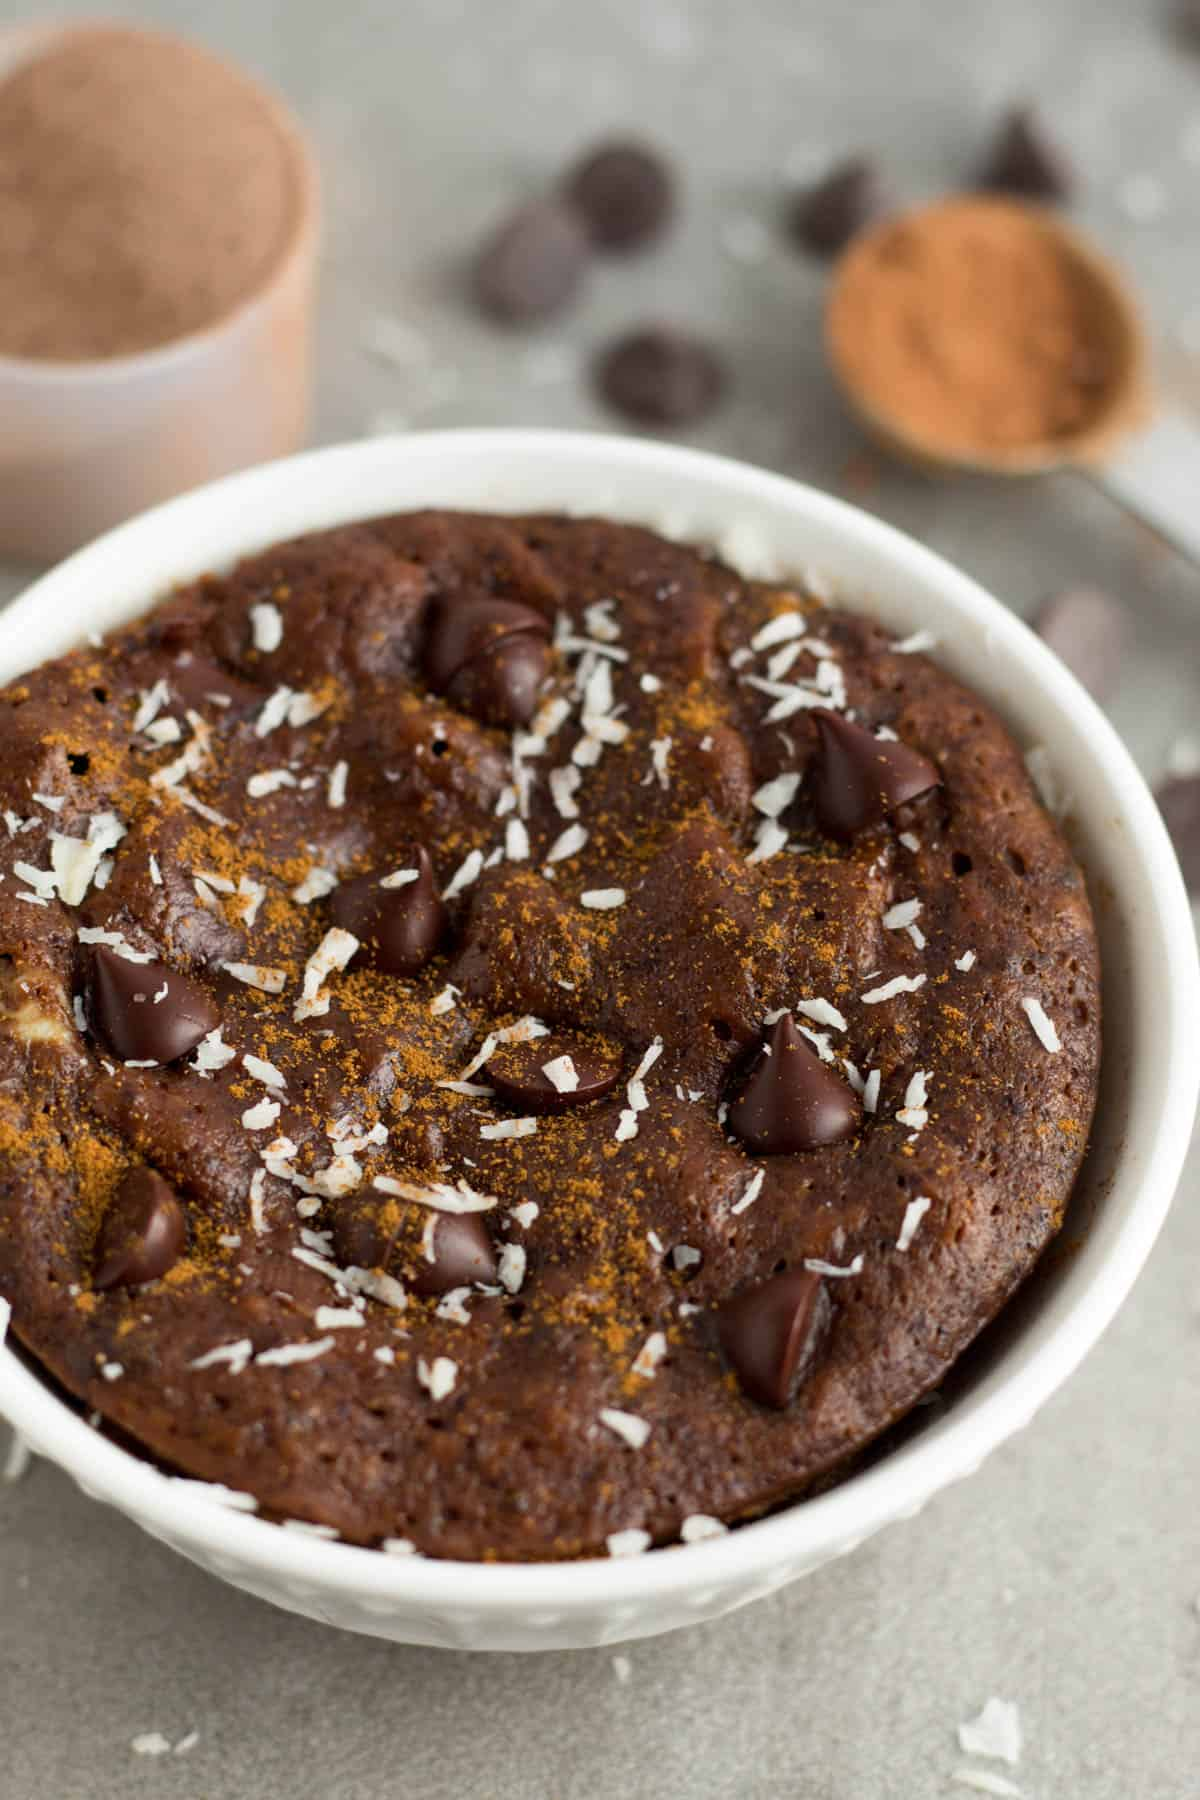 Paleo Healthy Chocolate Protein Mug Cake sprinkles with cinnamon and coconut with a teaspoon of cacao powder, chocolate chips, and powder powder in the background.